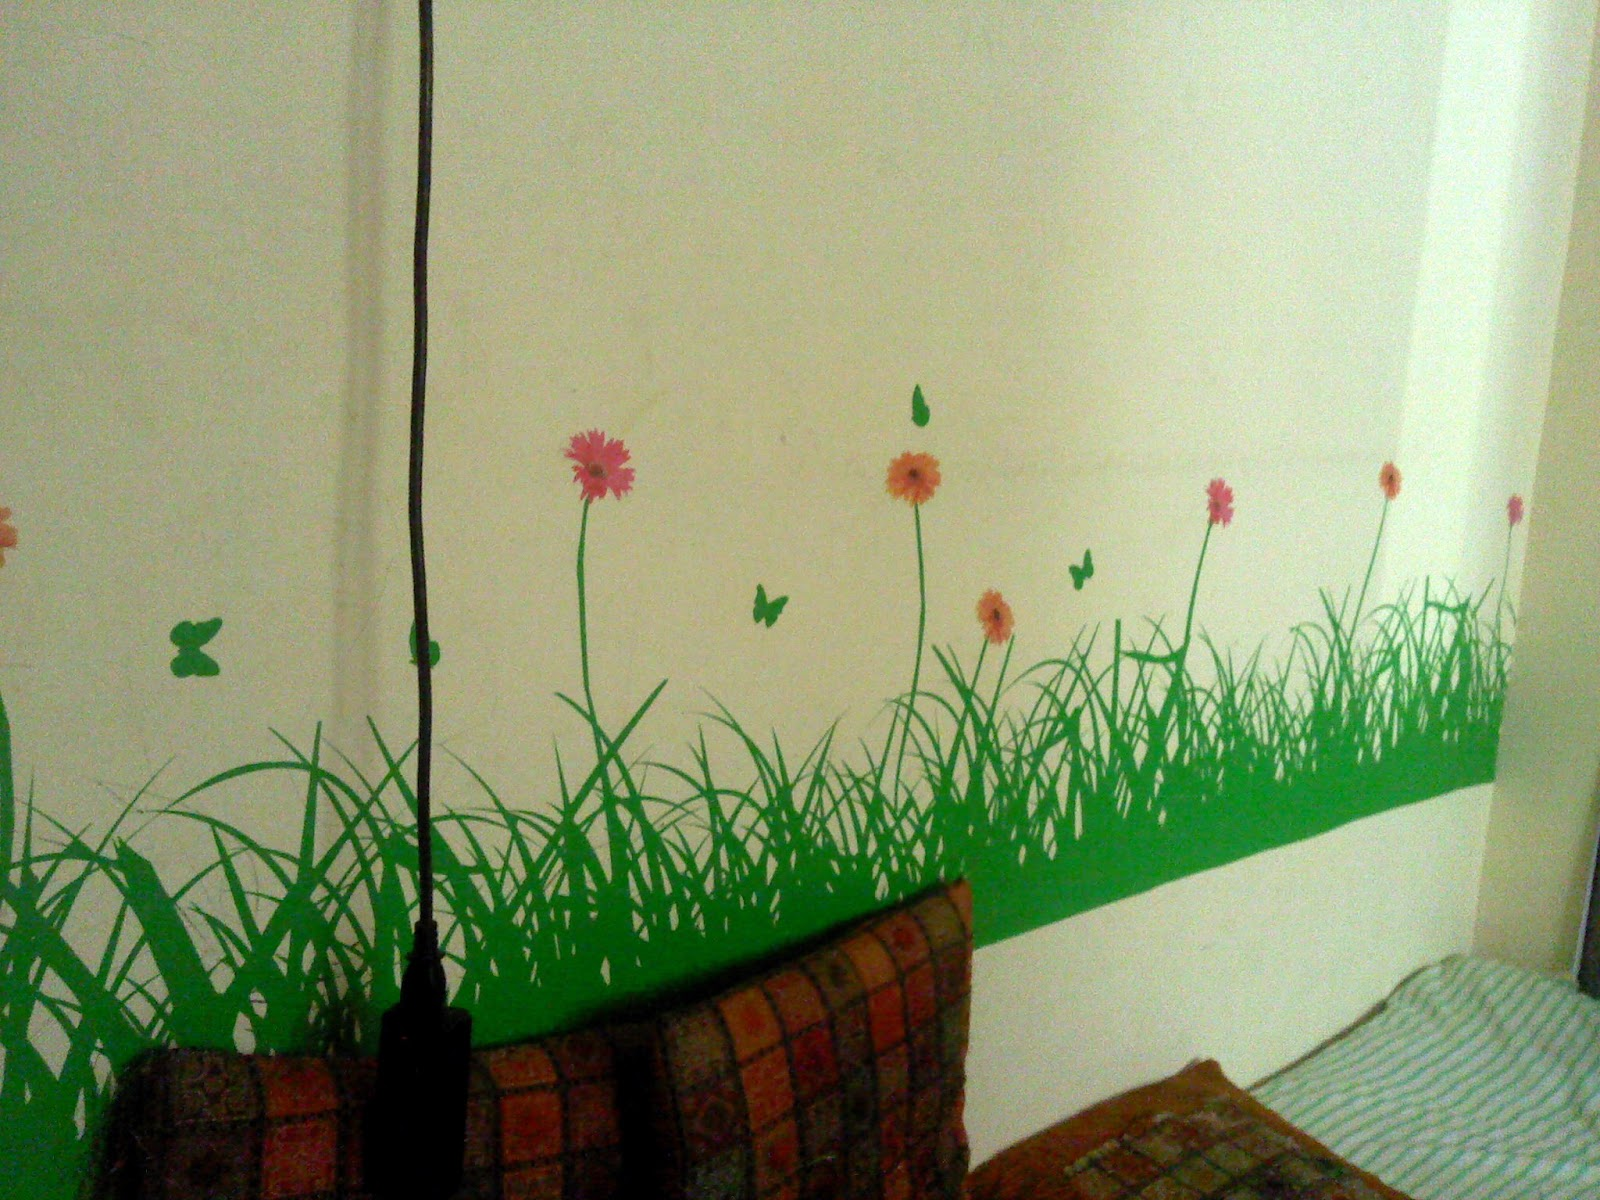 Grass_wall_decal_4.jpg & The Wall Decal blog: December 2012